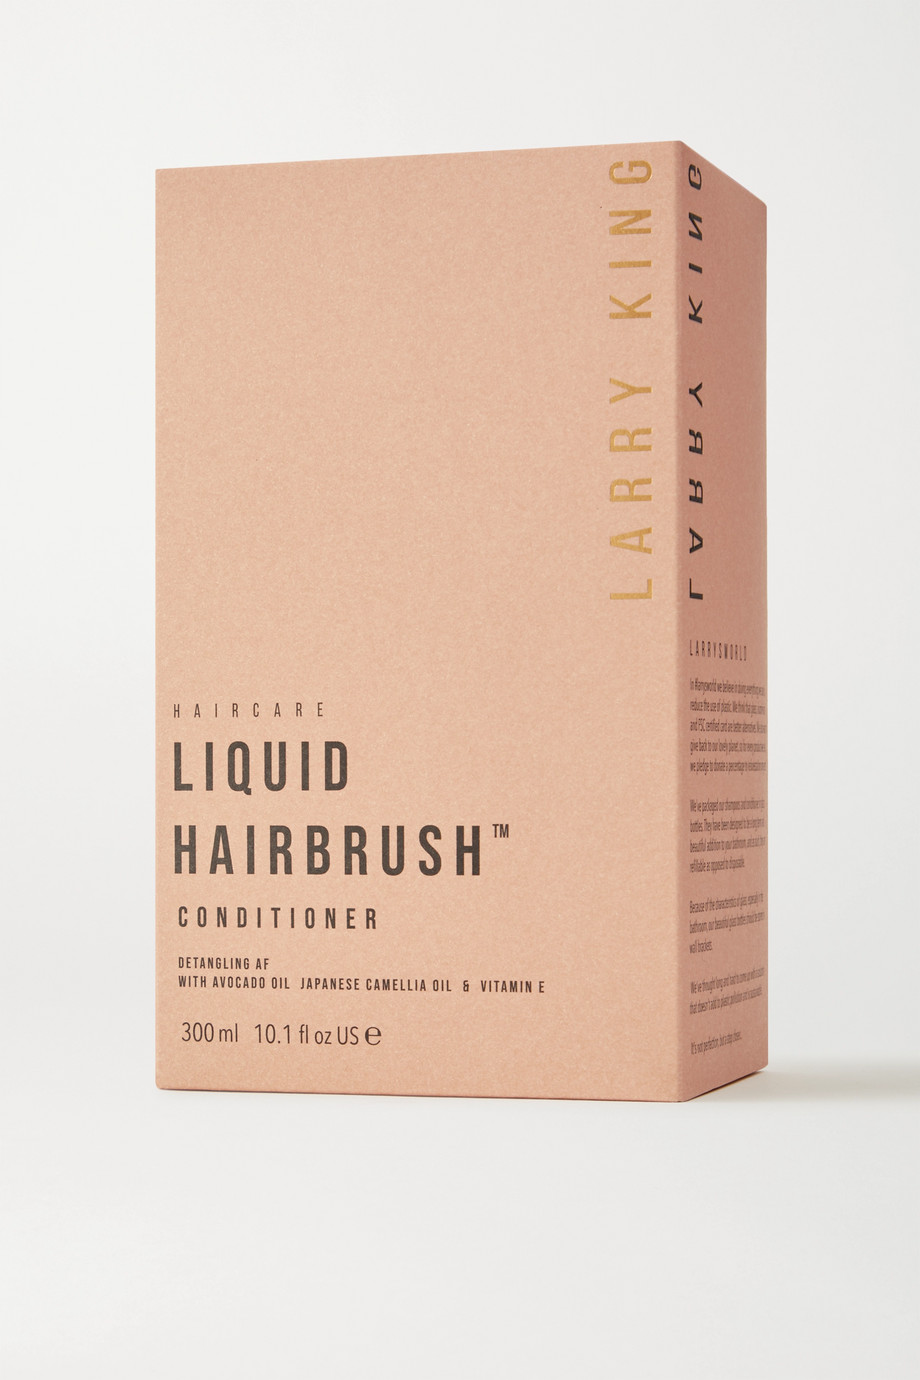 Larry King Liquid Hairbrush™ Conditioner, 300 ml – Conditioner